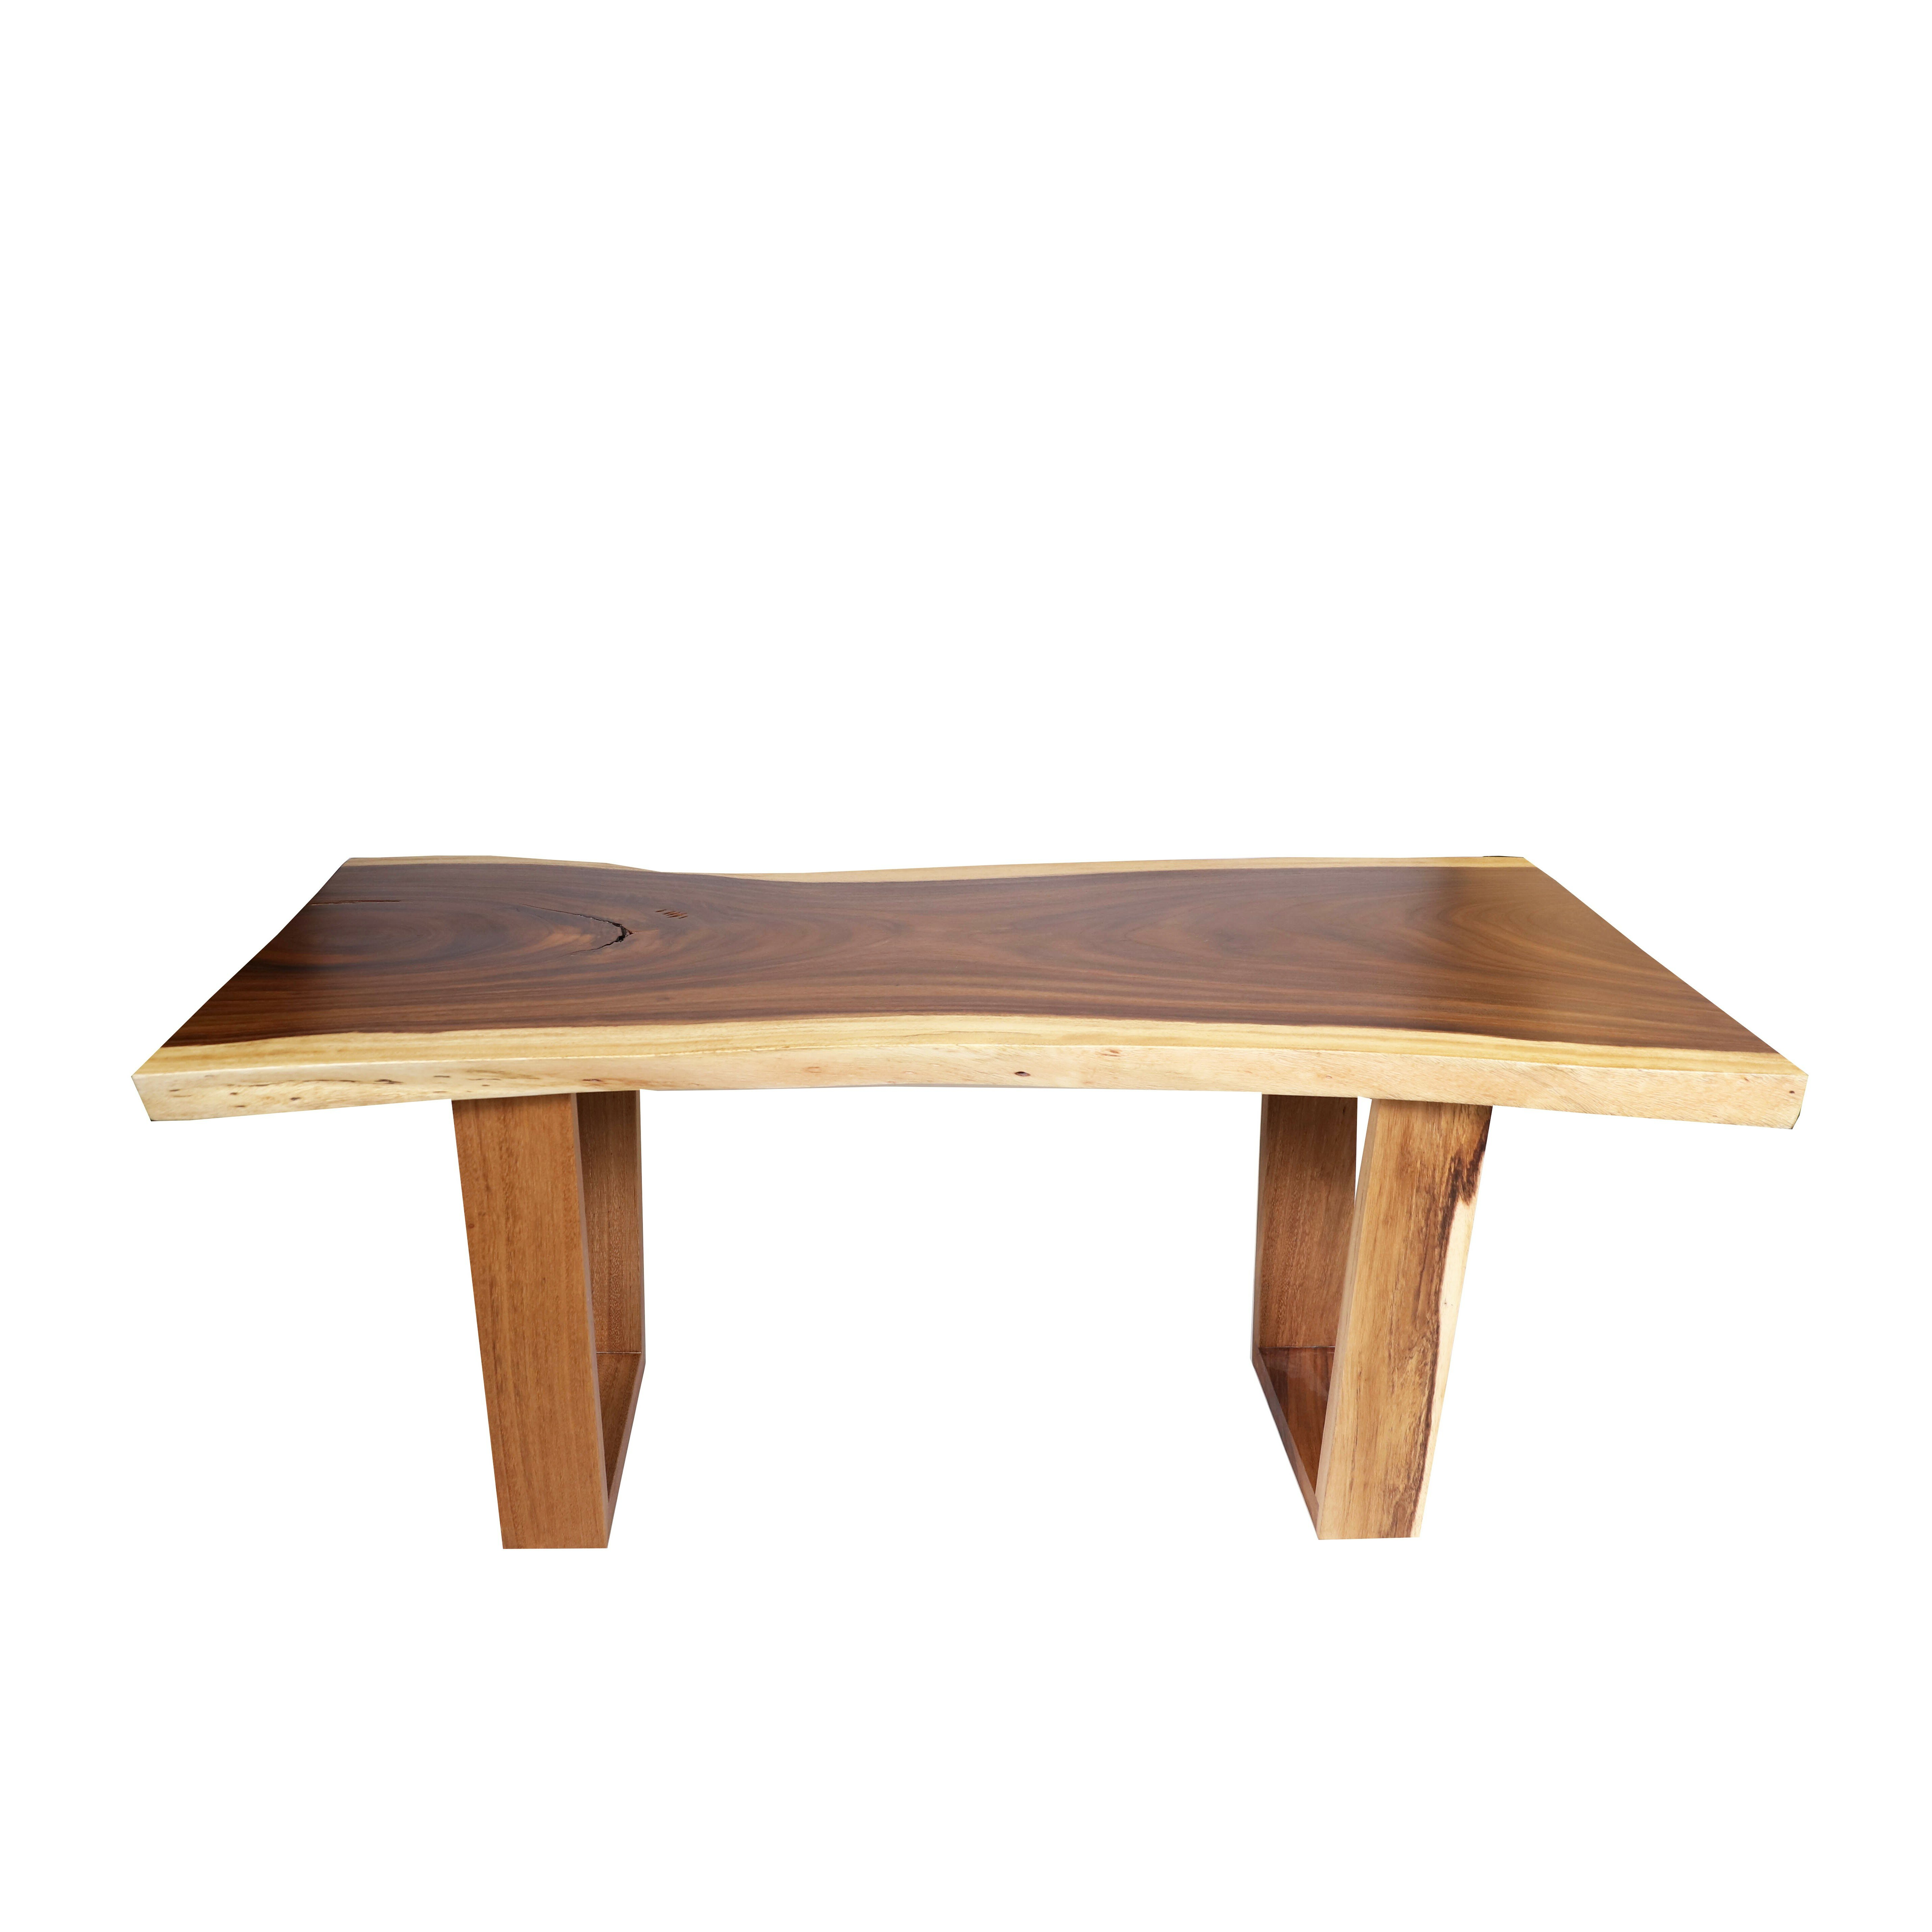 oil table red danish dining finished is cedar dinner in top finish just comments time and my woodworking natural christmas bade edge for live redwood r